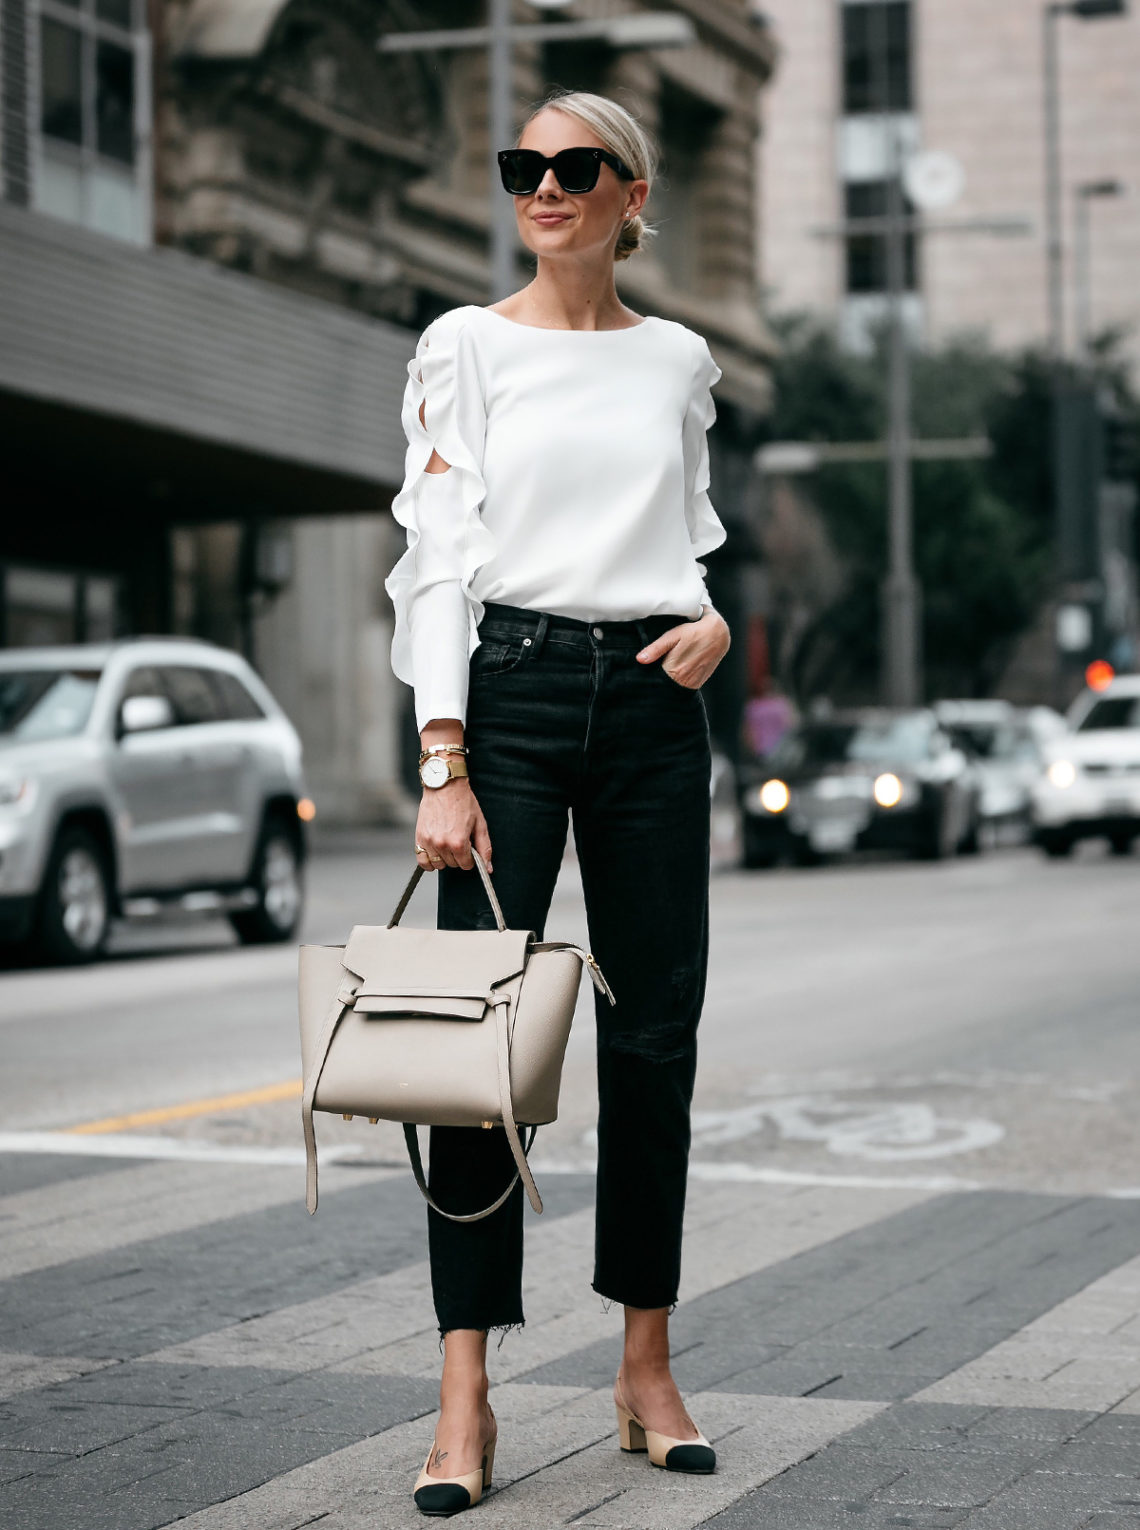 Blonde Woman Wearing Club Monaco White Ruffle Sleeve Top Frame Black Boyfriend Jeans Outfit Celine Belt Bag Chanel Slingbacks Fashion Jackson Dallas Blogger Fashion Blogger Street Style